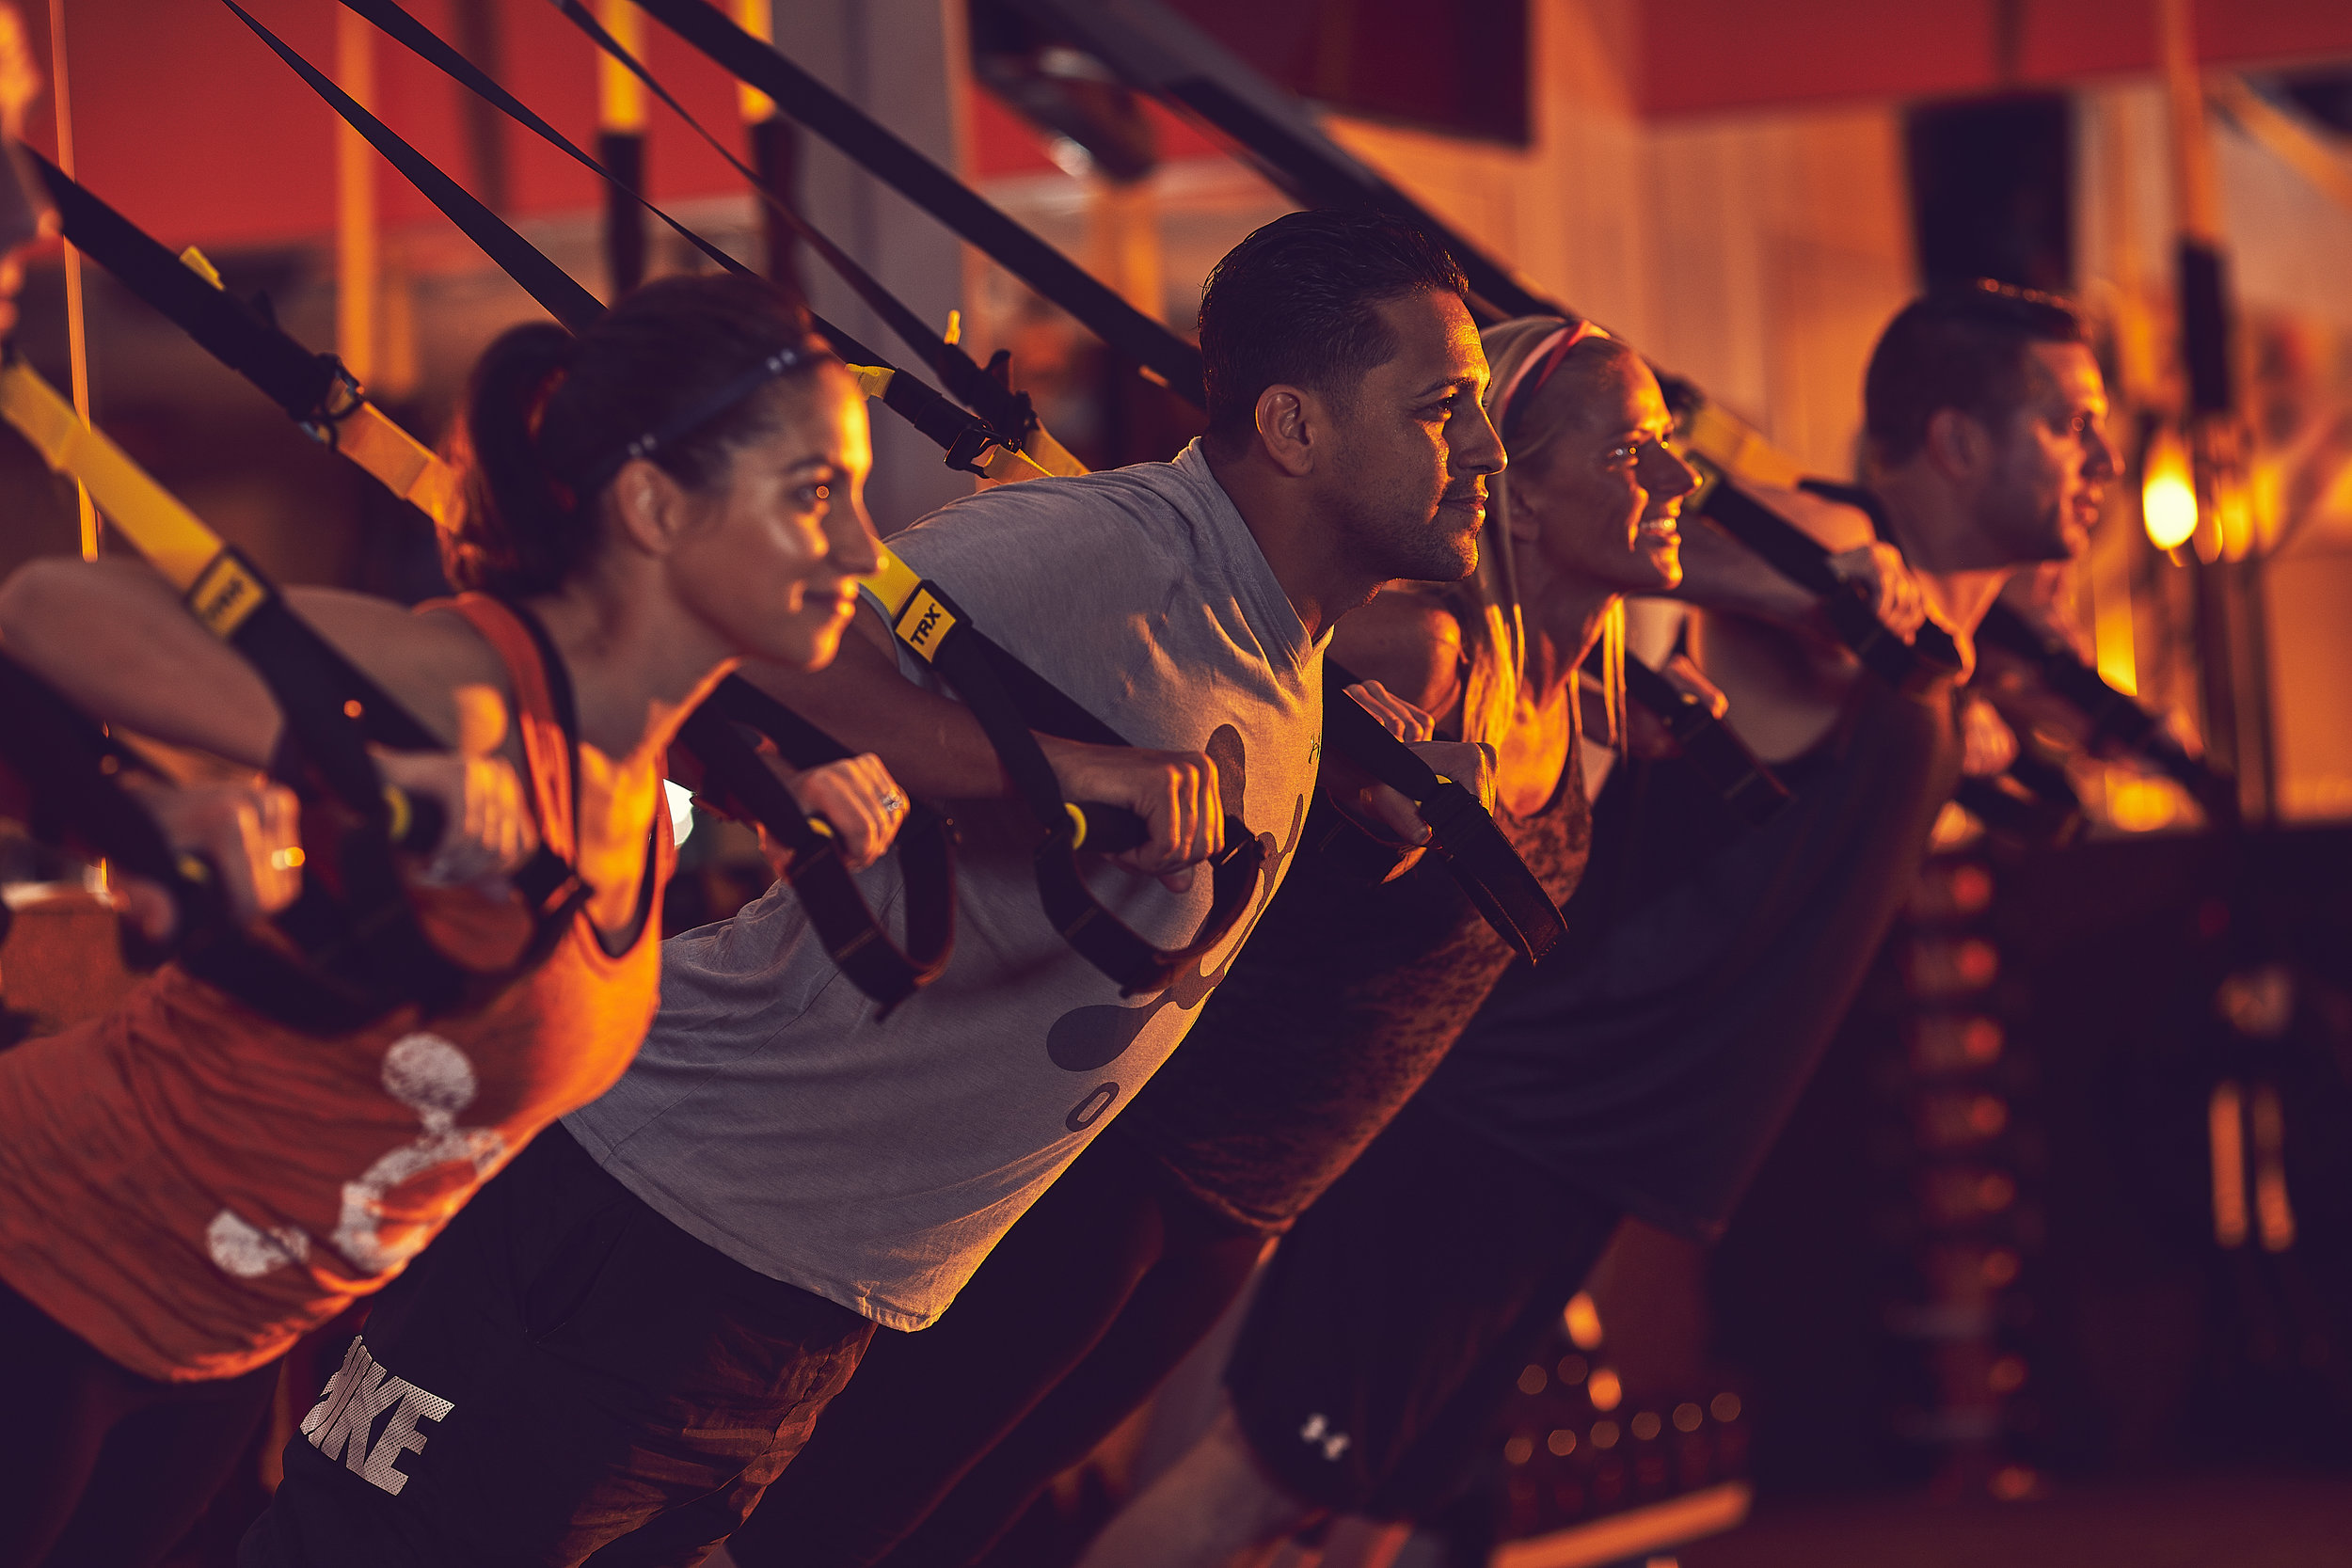 A WORKOUT FOR EVERYONE - Whether you're an athlete or just starting your fitness journey, Orangetheory is designed for all fitness levels. Our experienced coaches provide options that allow you to safely perform movements that work around any physical issues. Walk, jog, run, or ride, you set your own pace. Well…technically your heart rate does.